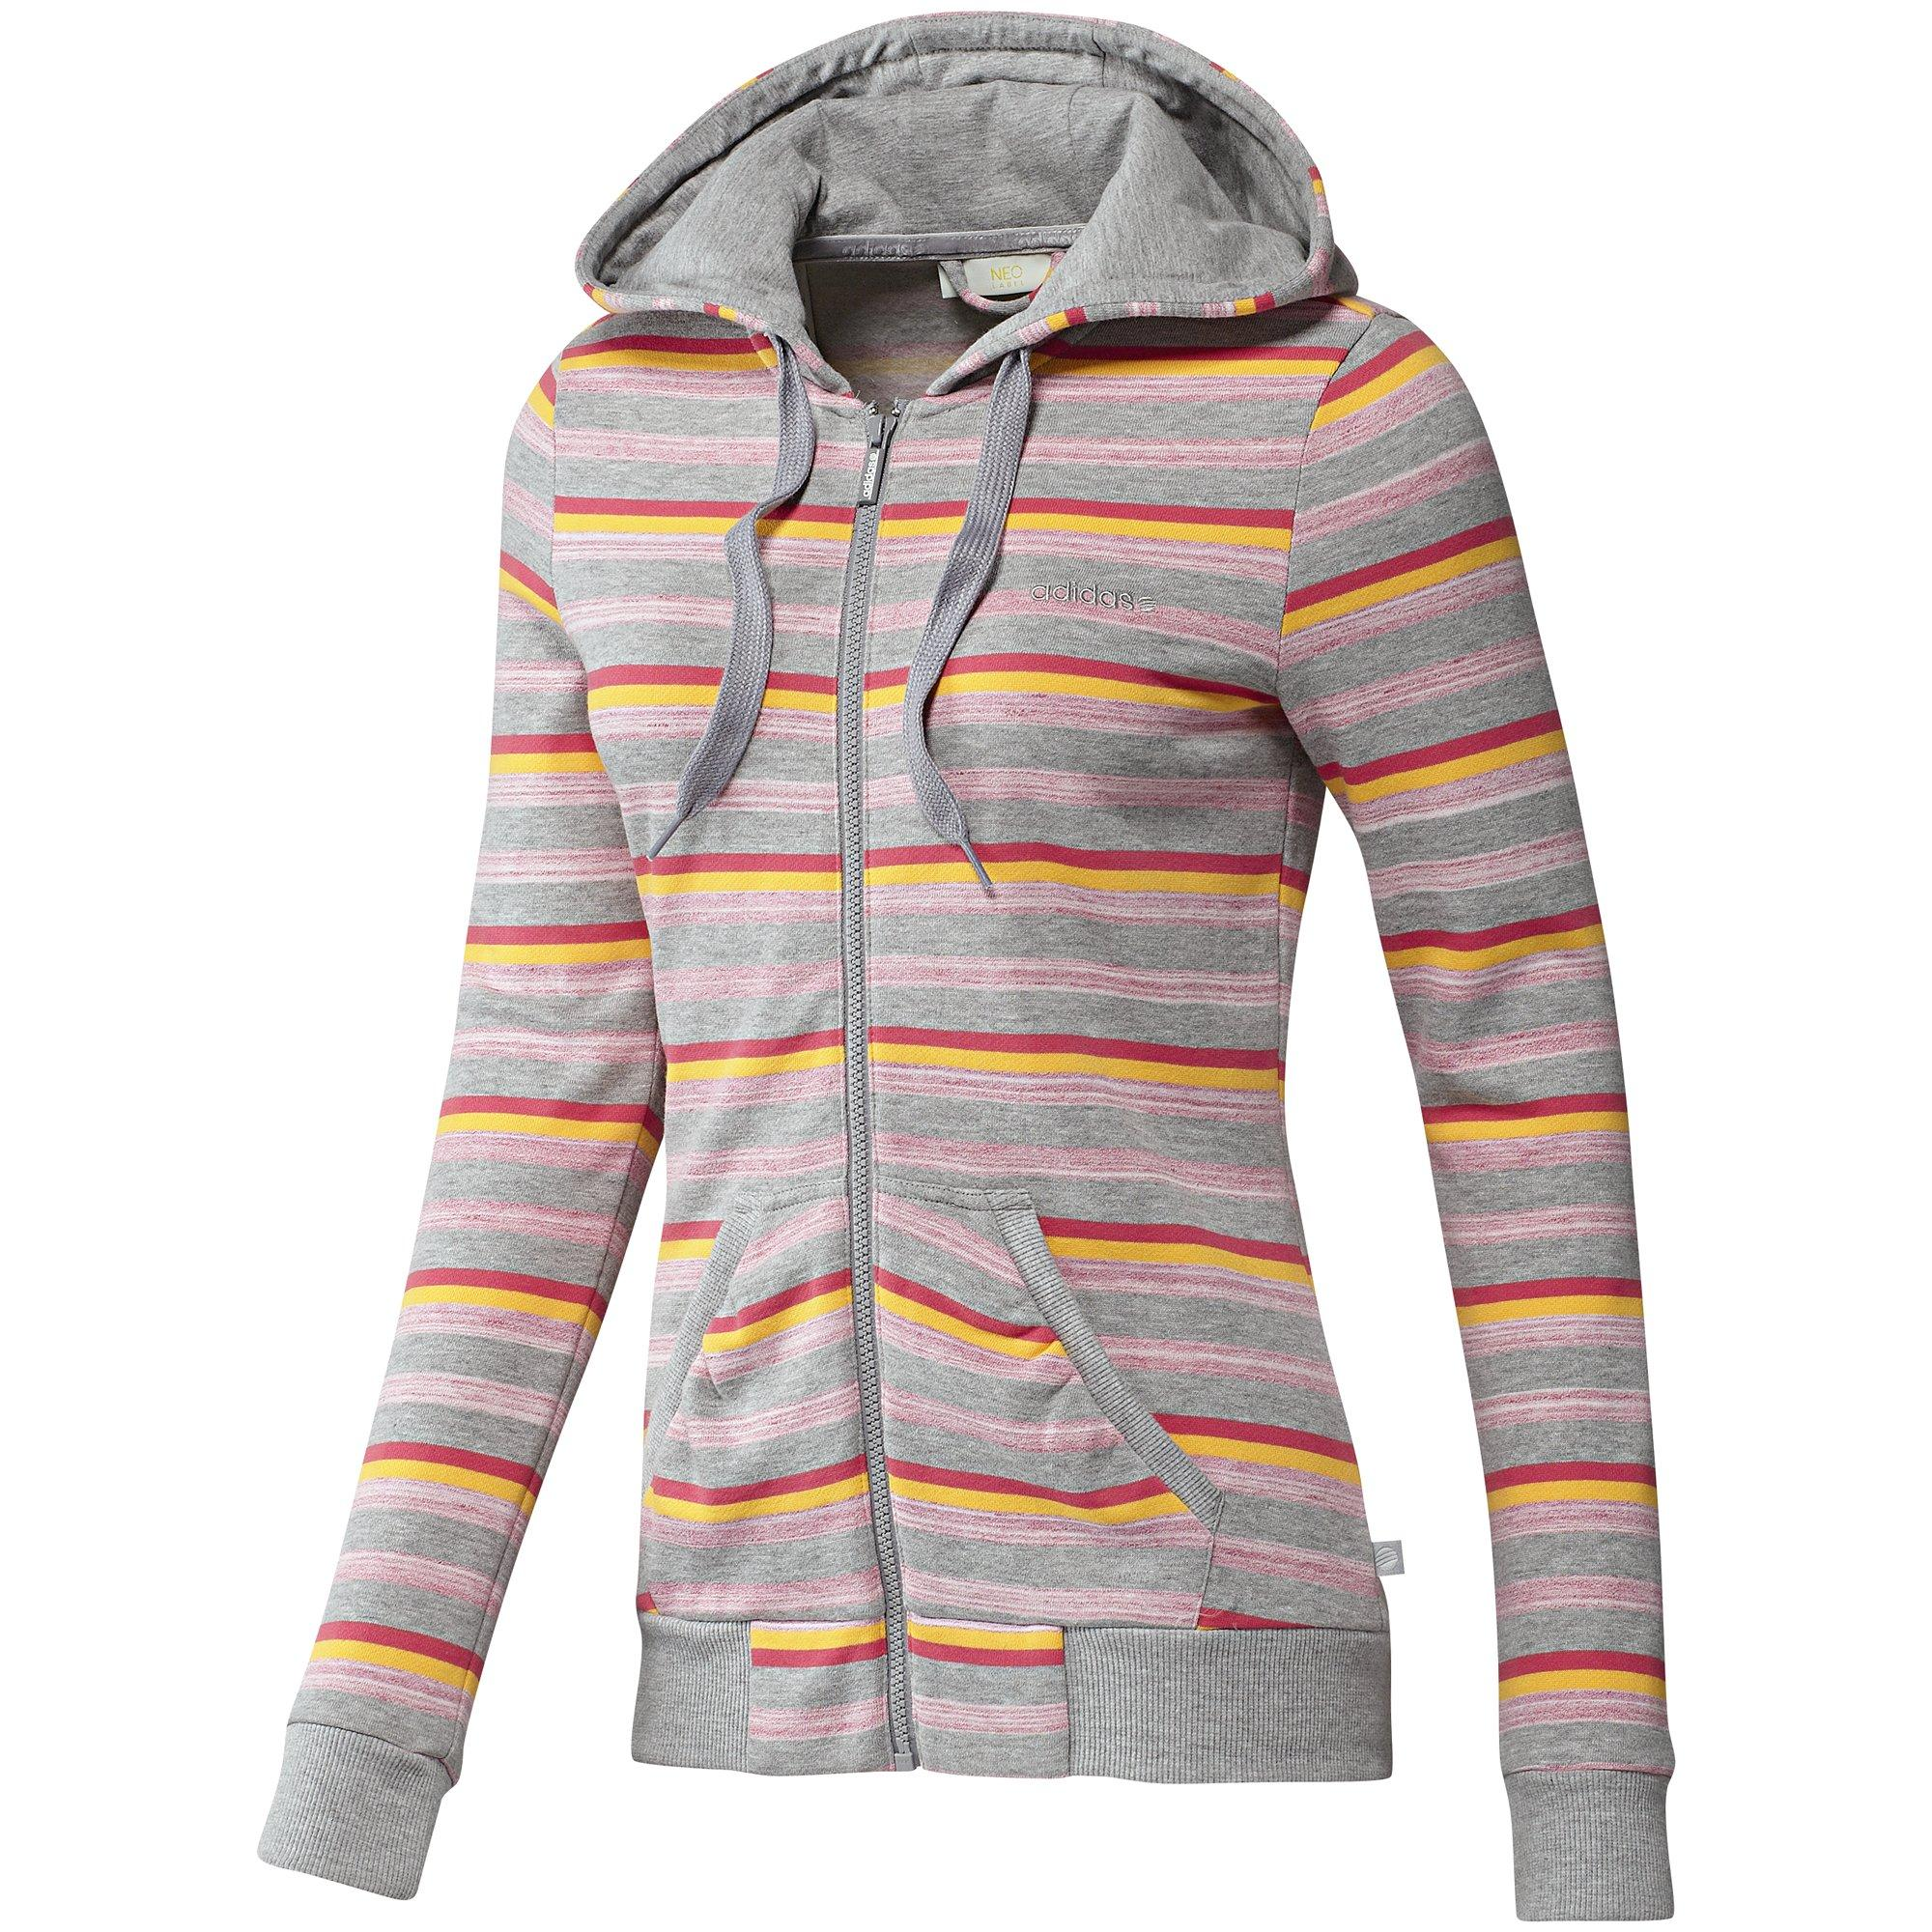 Foto adidas Chaqueta con capucha Striped Fleece Mujer